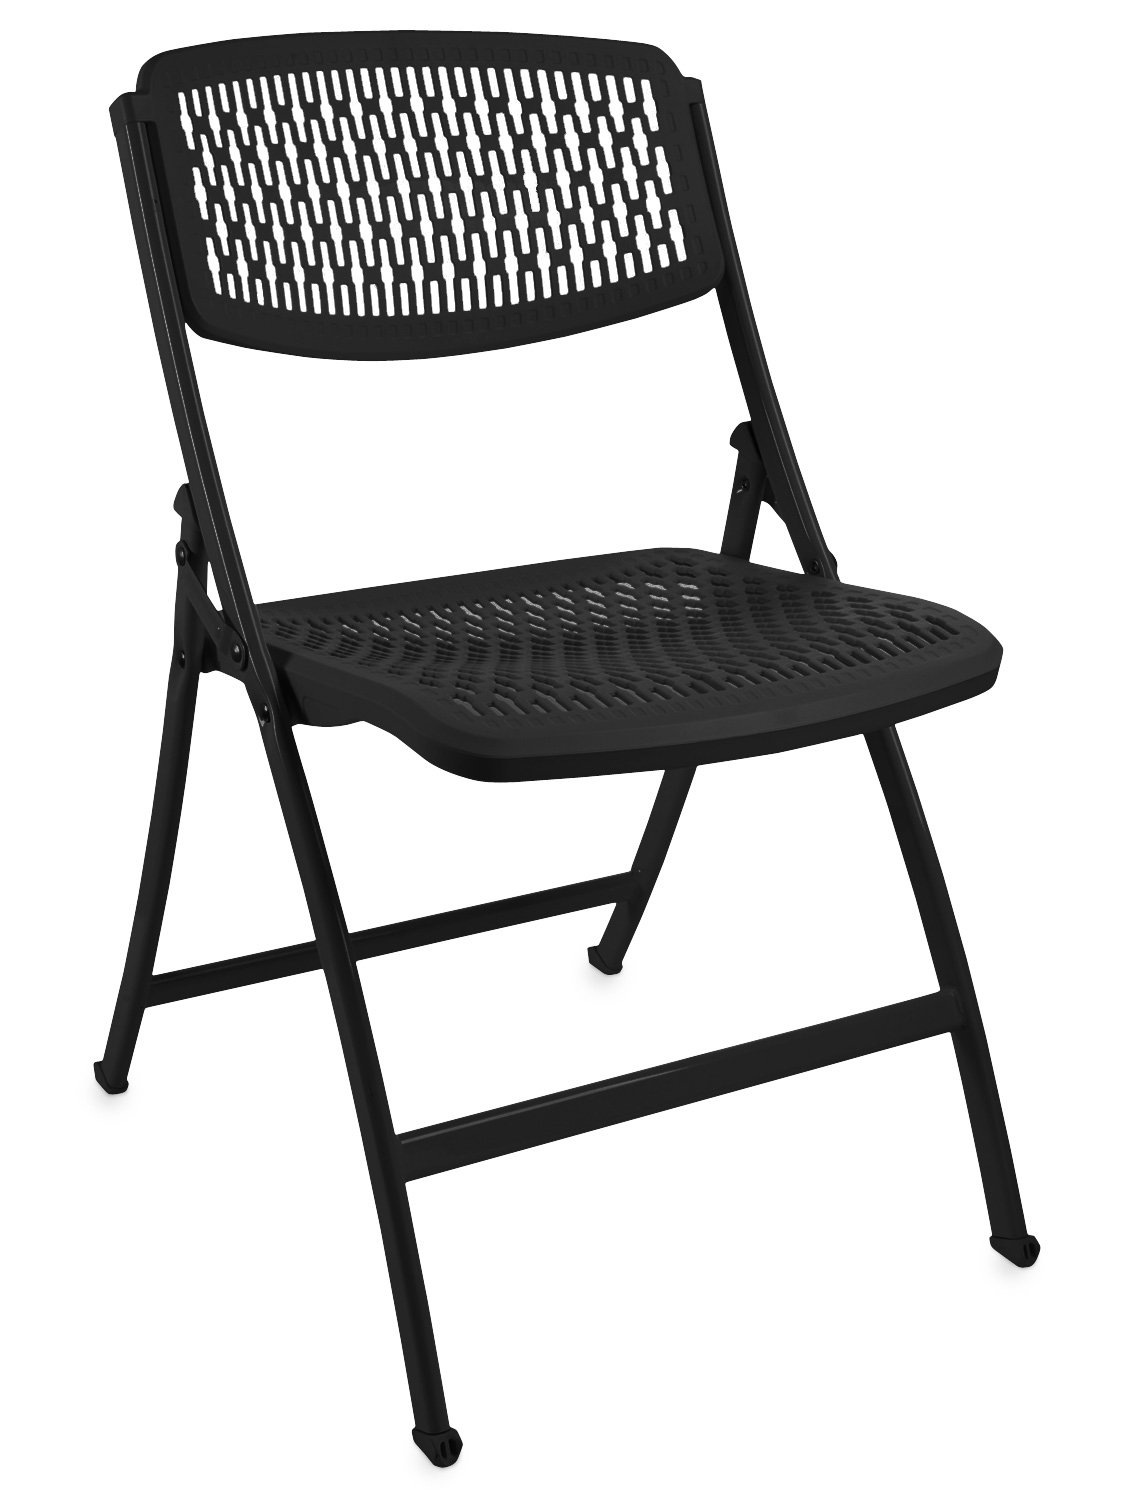 Superieur Amazon.com: Flex One Event Folding Chair From Mity Lite With Breathable  Seat And Back   No More Sweating From Sitting On Chair: Kitchen U0026 Dining